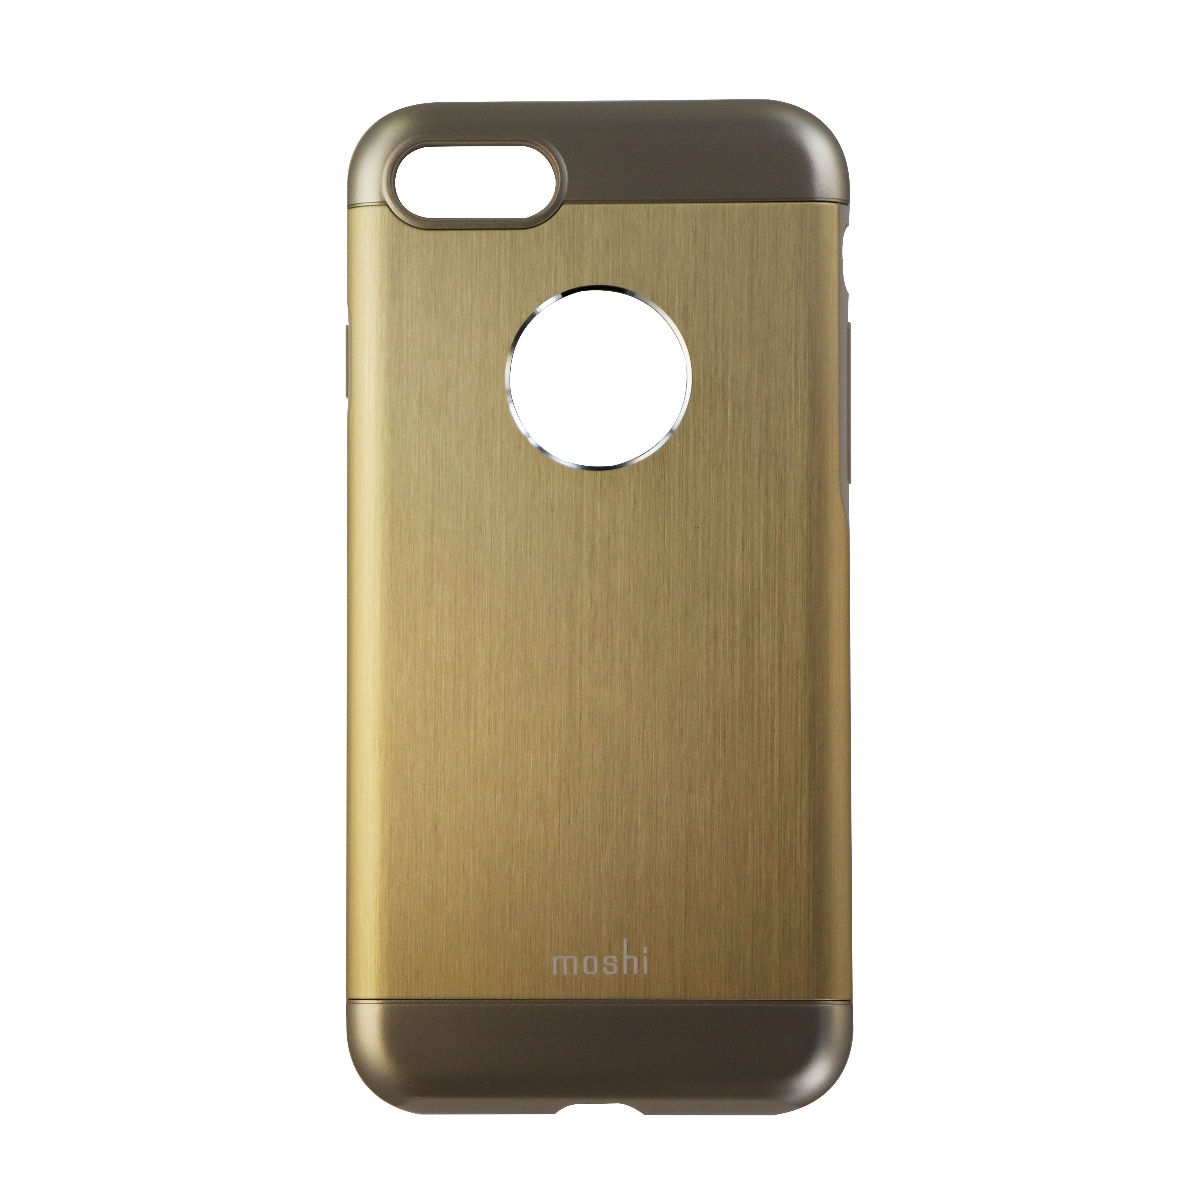 Moshi Armour Series Hybrid Metallic Case Cover for Apple iPhone 7 - Gold